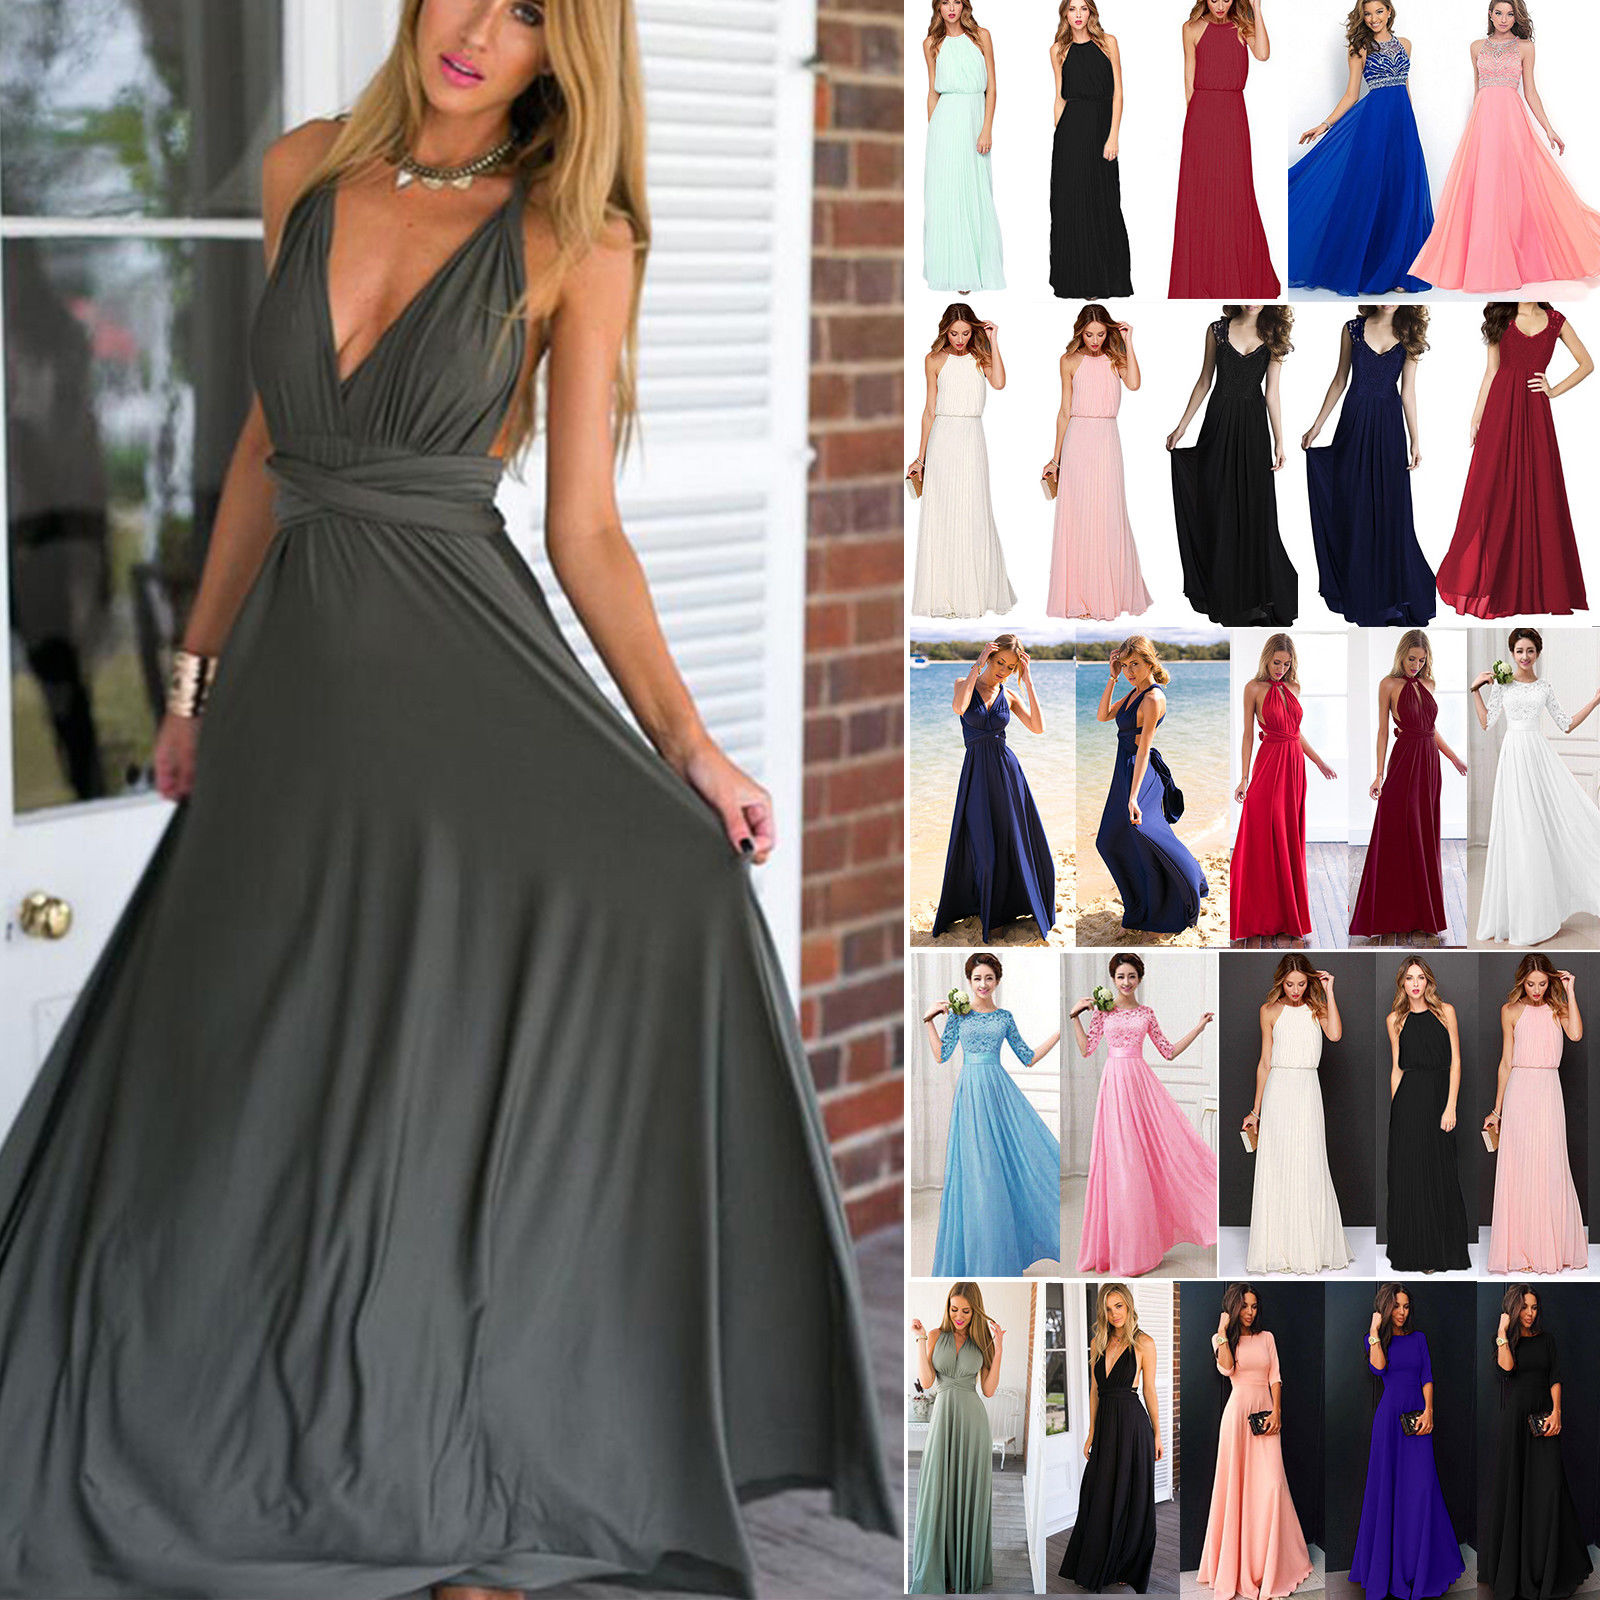 8dac3b423e0 Women Long Lace Evening Formal Cocktail Party Ball Gown Bridesmaid Maxi  Dress US